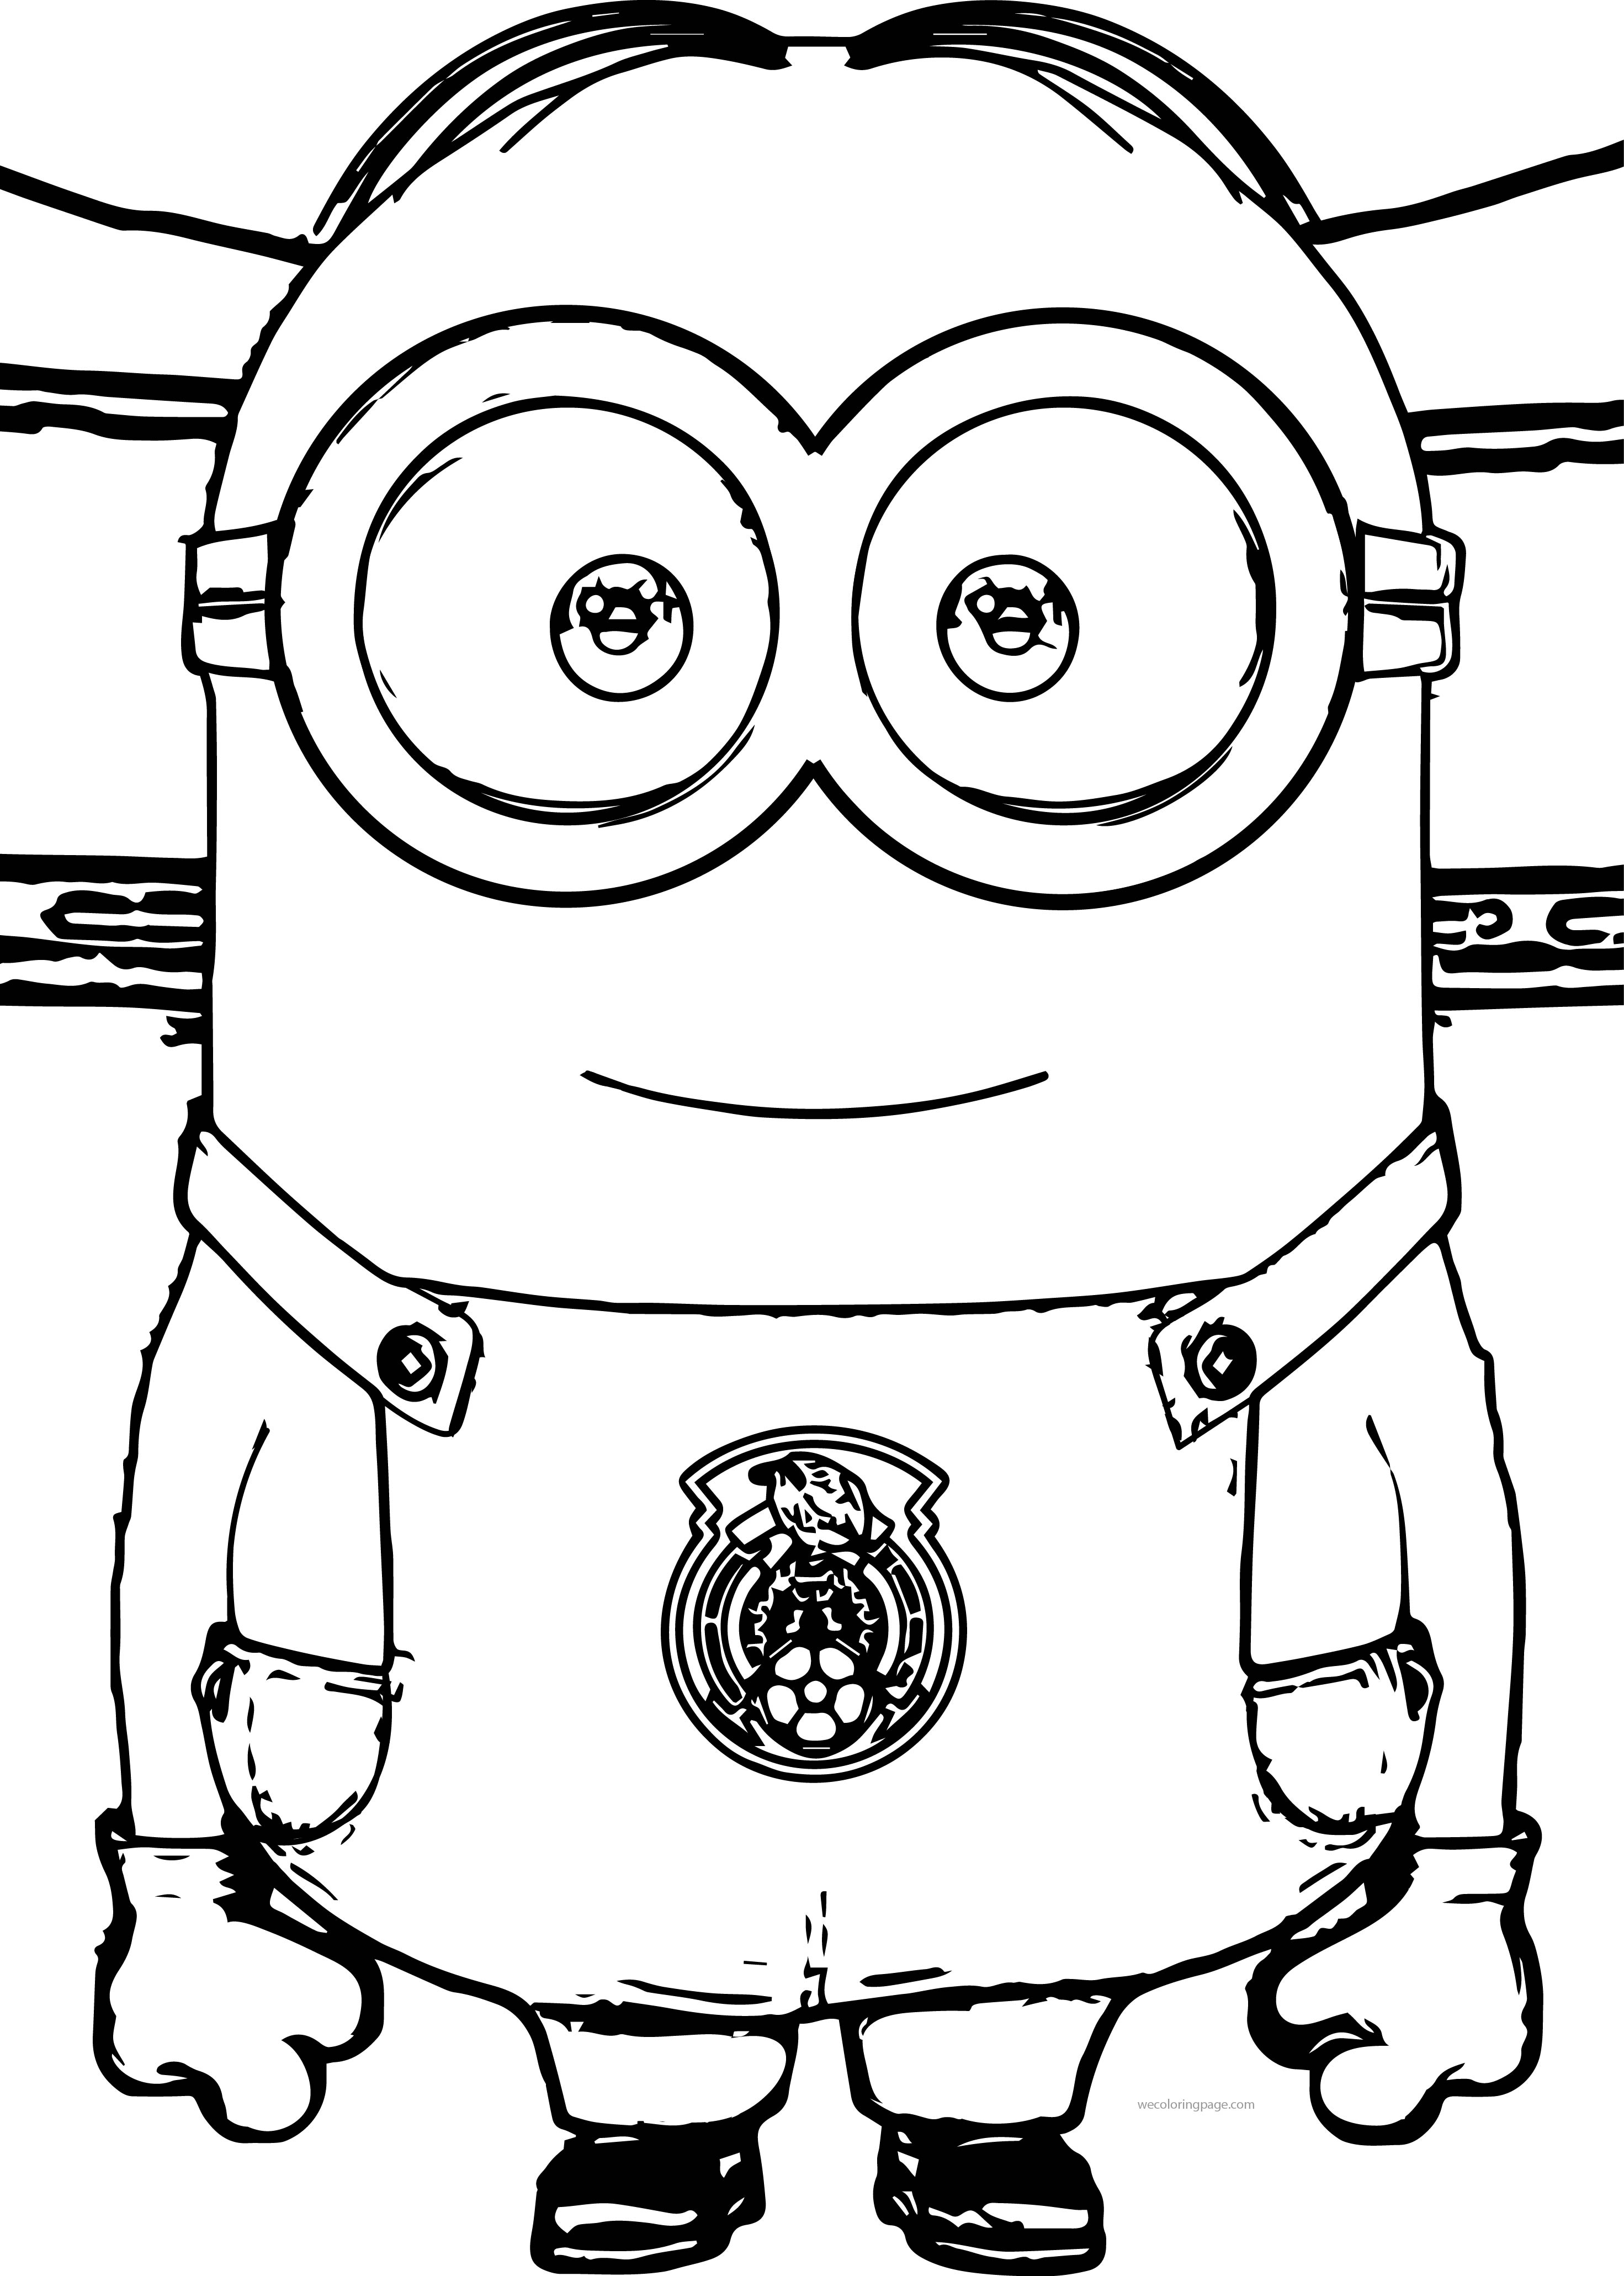 Coloring Minion Coloring Pages Soccer Coloring Pages